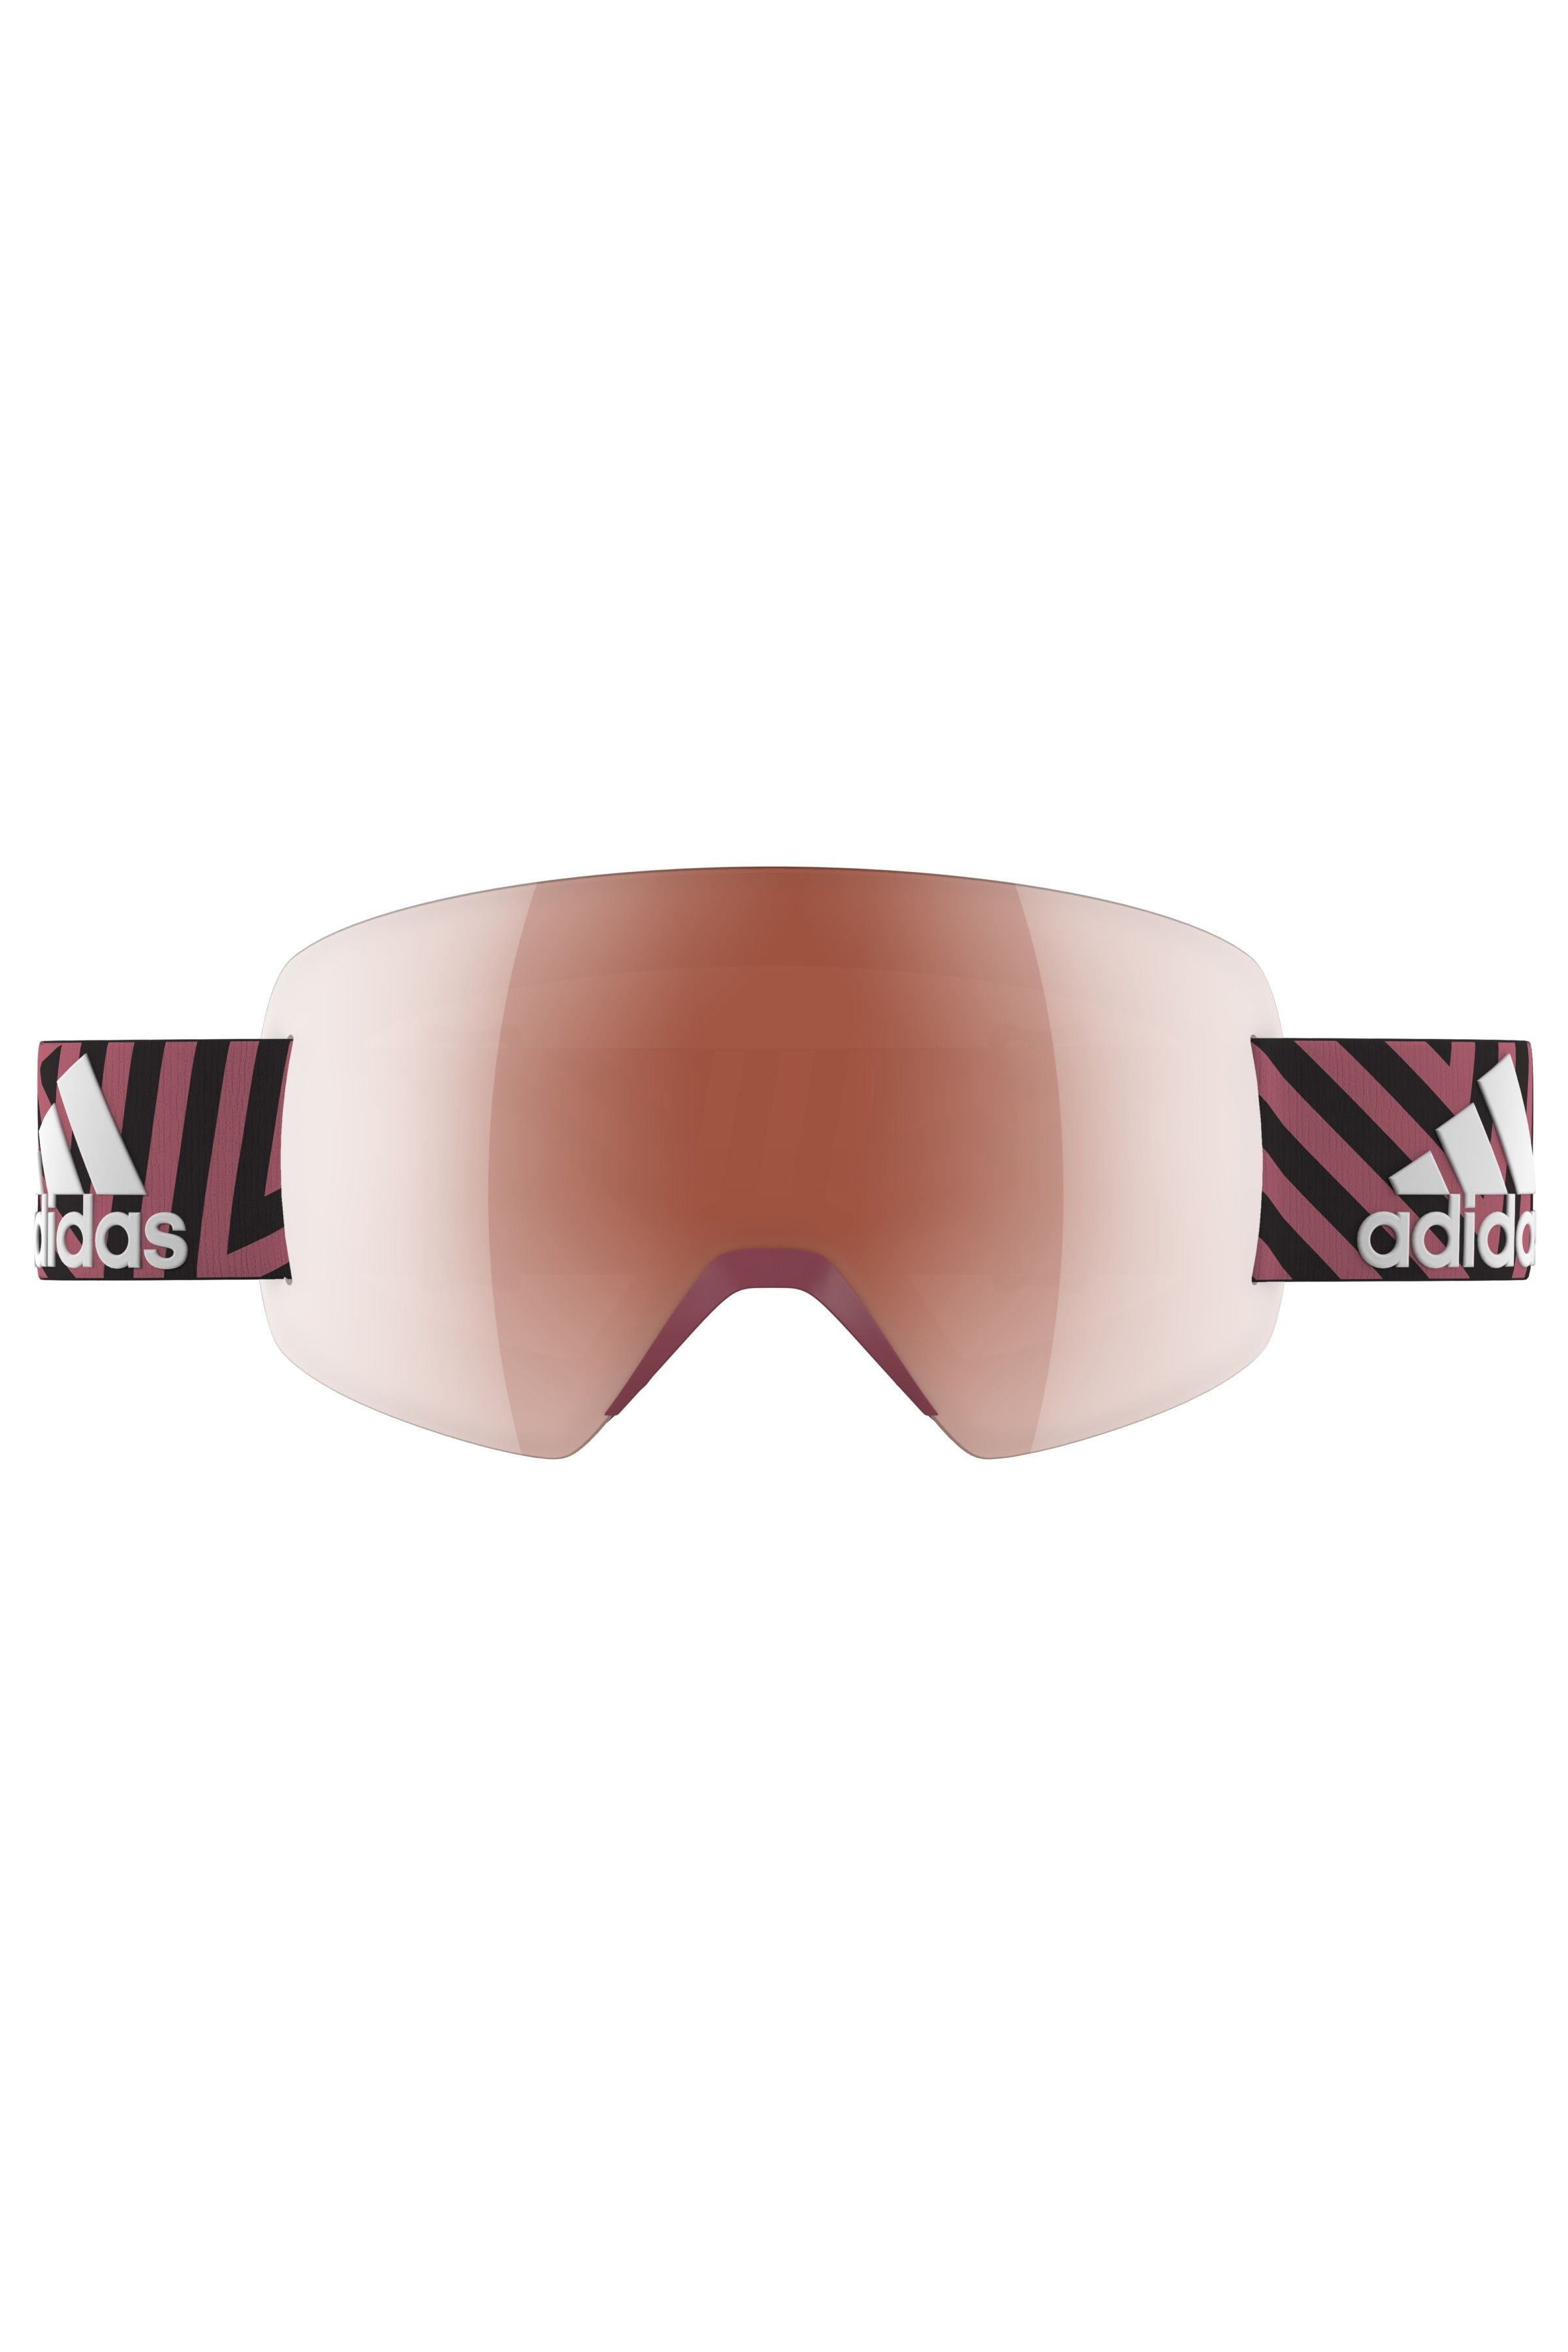 what to wear skiing - best ski goggles